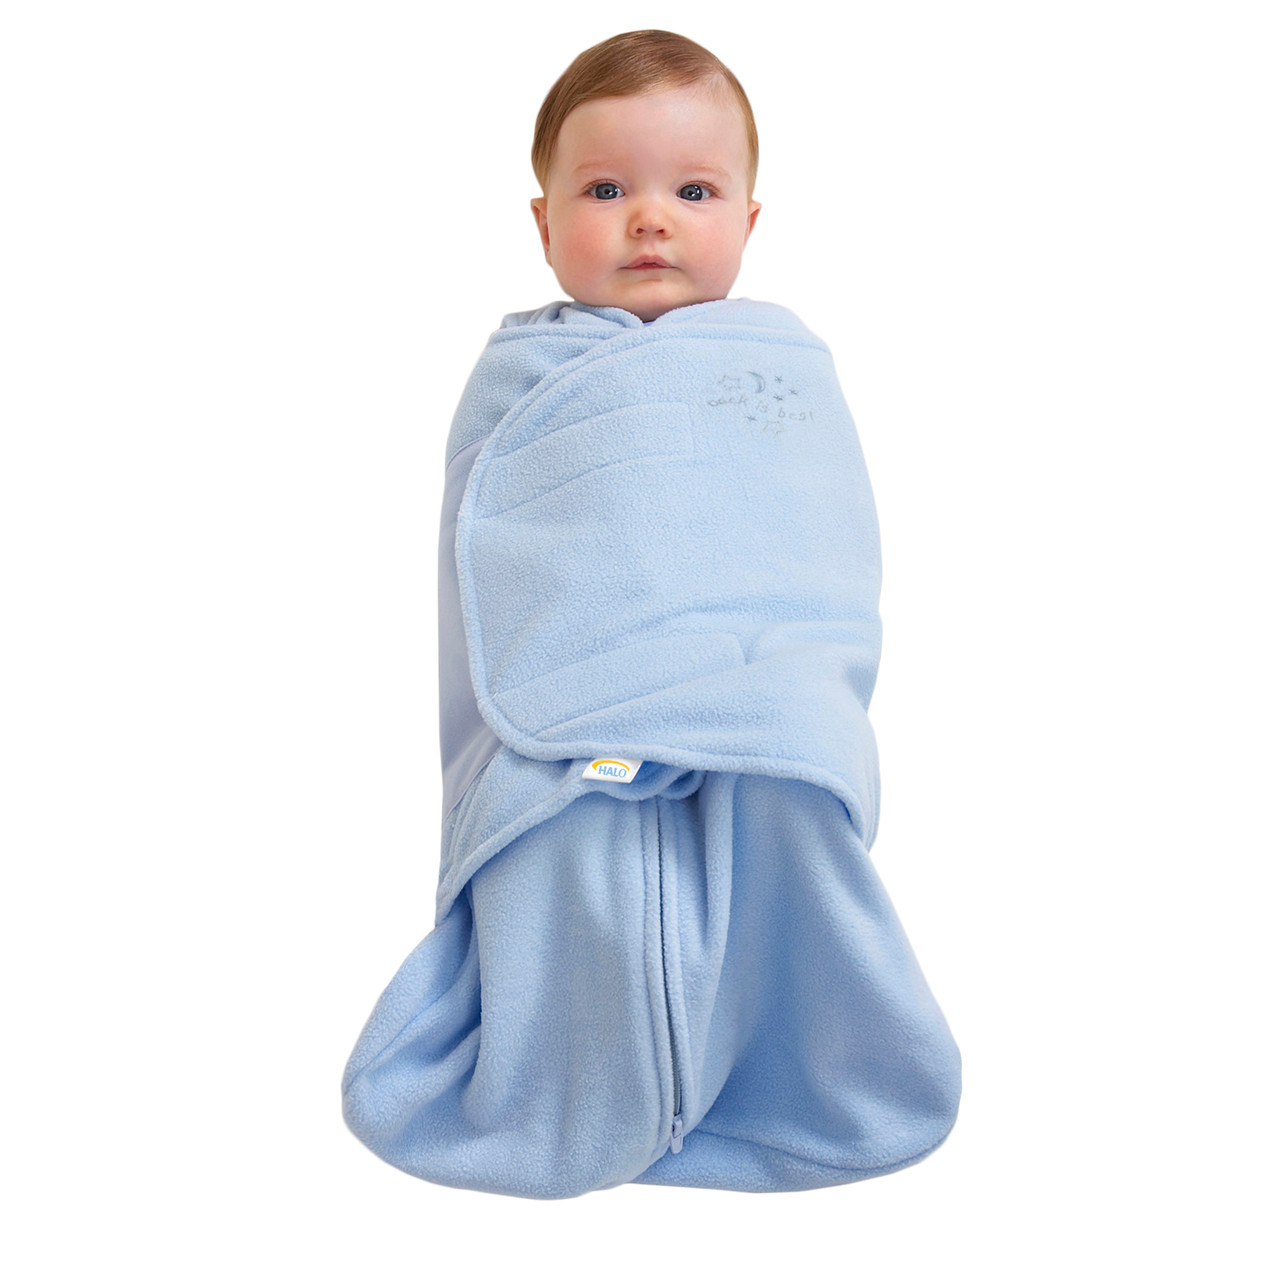 Halo 174 Sleepsack 174 Swaddle Micro Fleece Blue